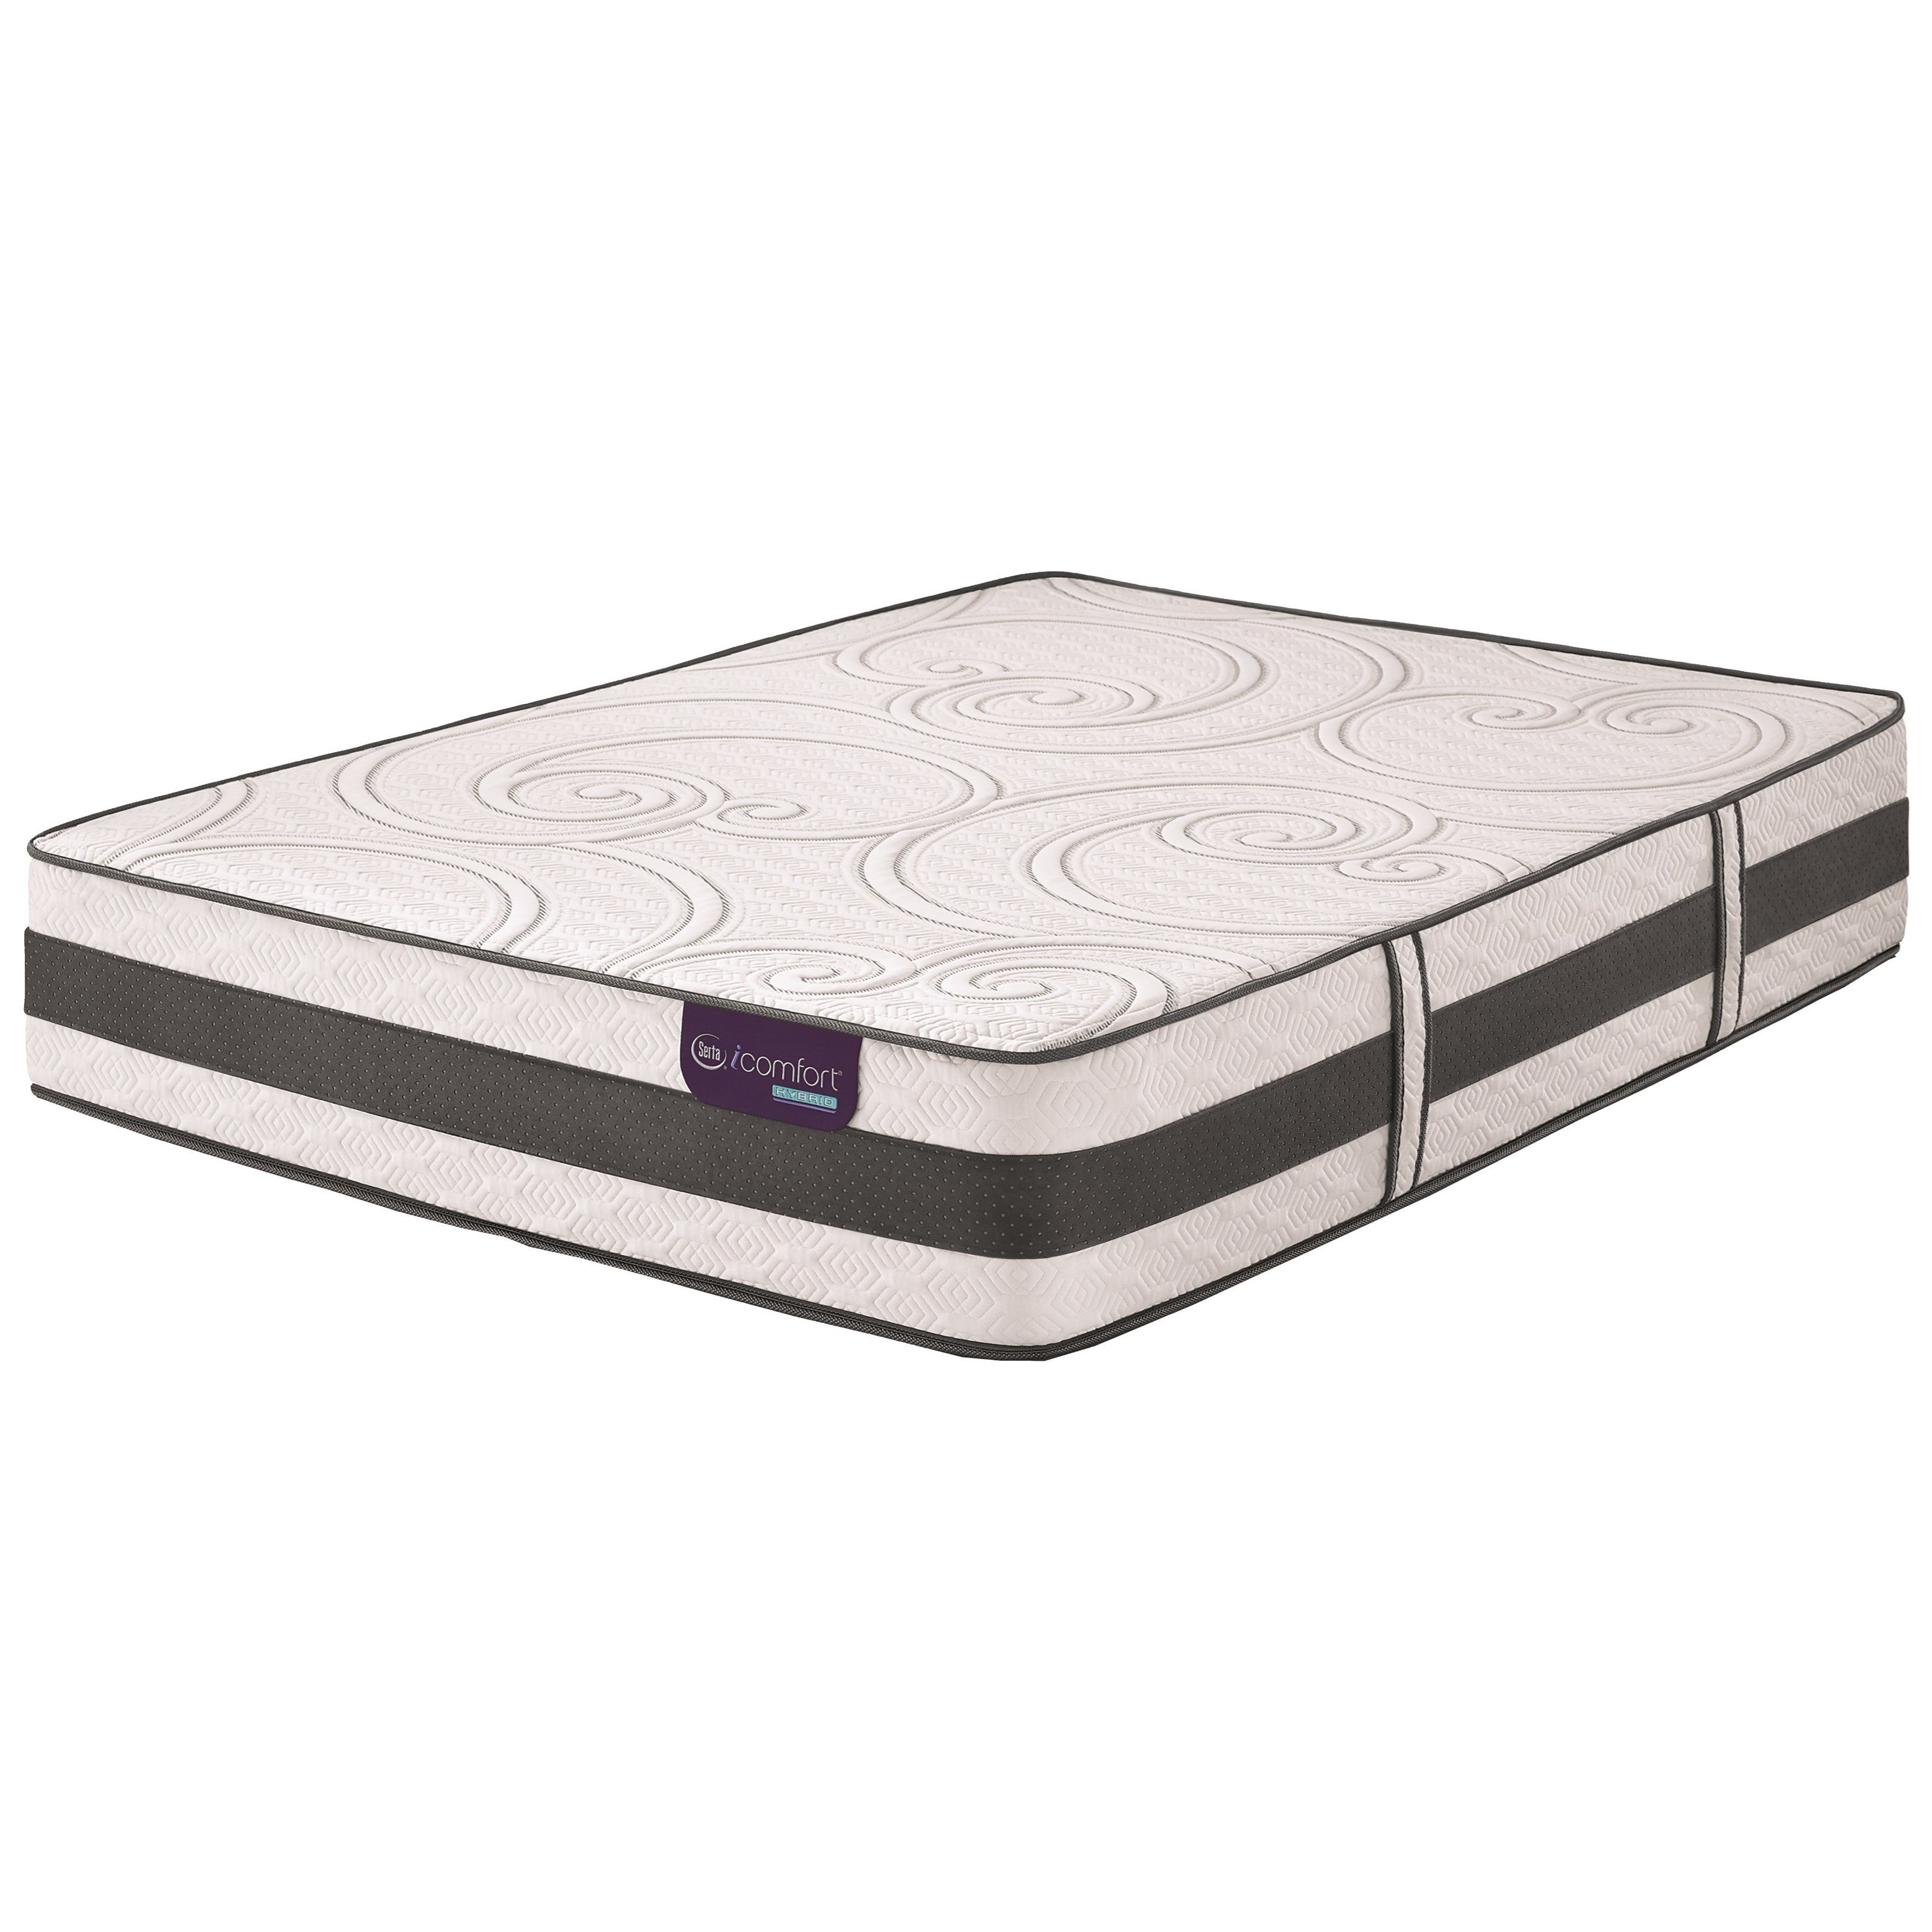 Serta iComfort Hybrid Philosopher Full Plush Hybrid Mattress - Item Number: PhilosopherPlsh-F